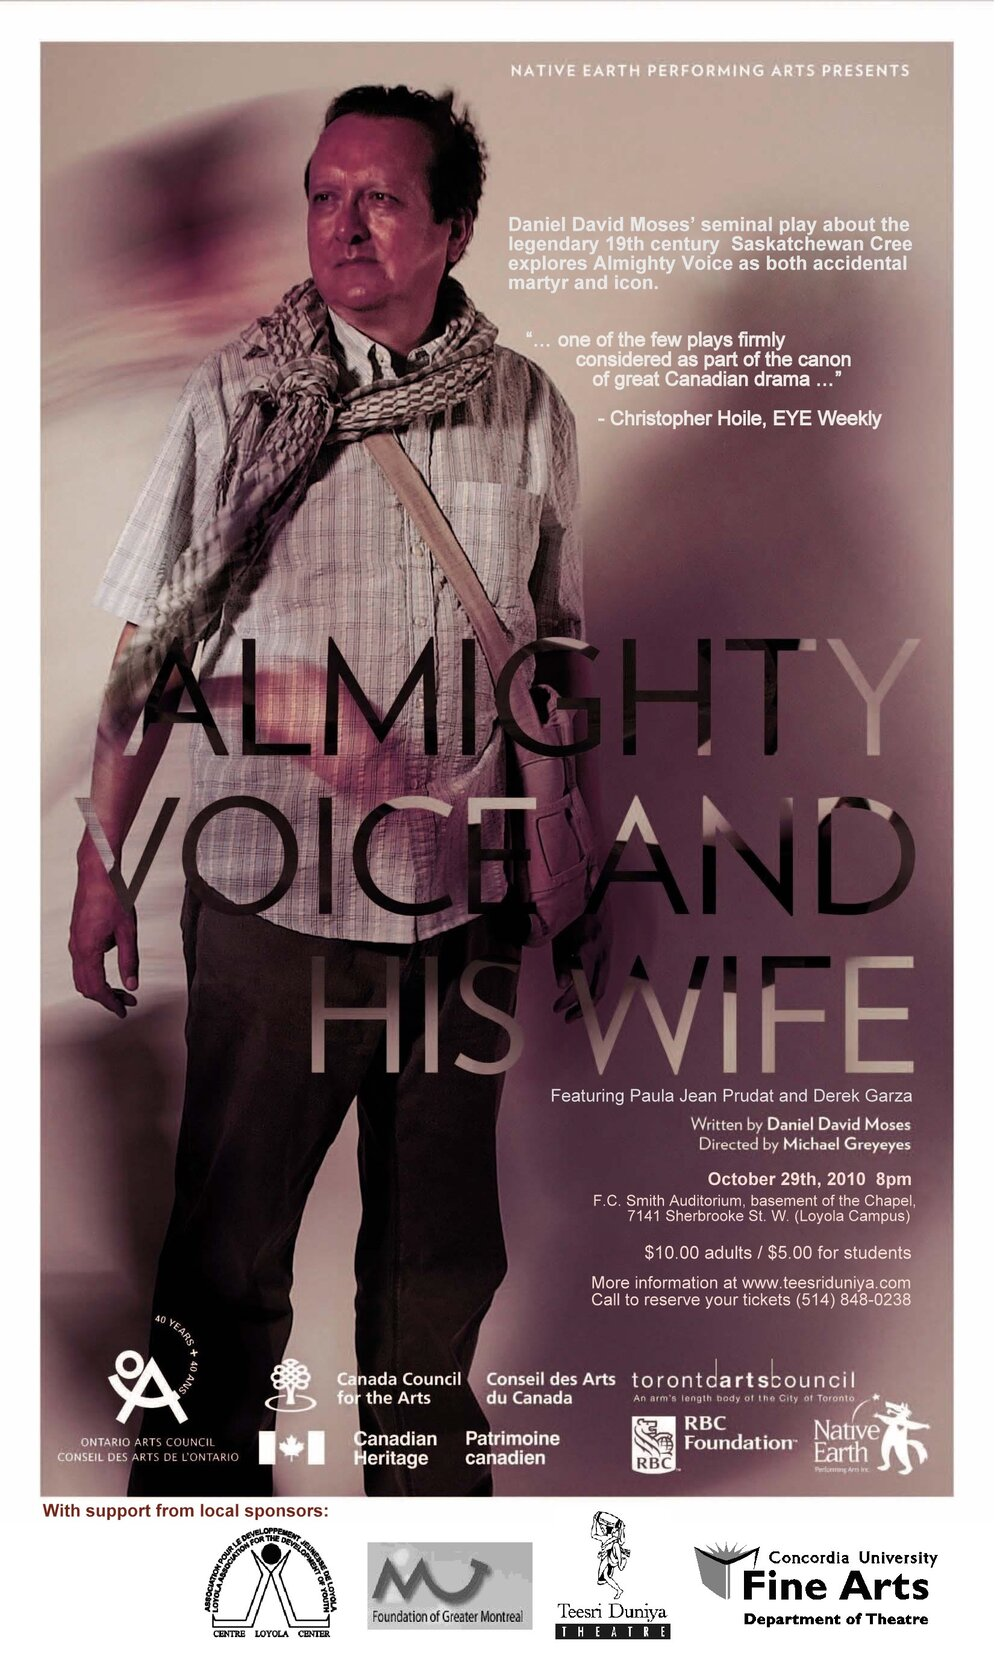 Almighty Voice and His Wife - 2010